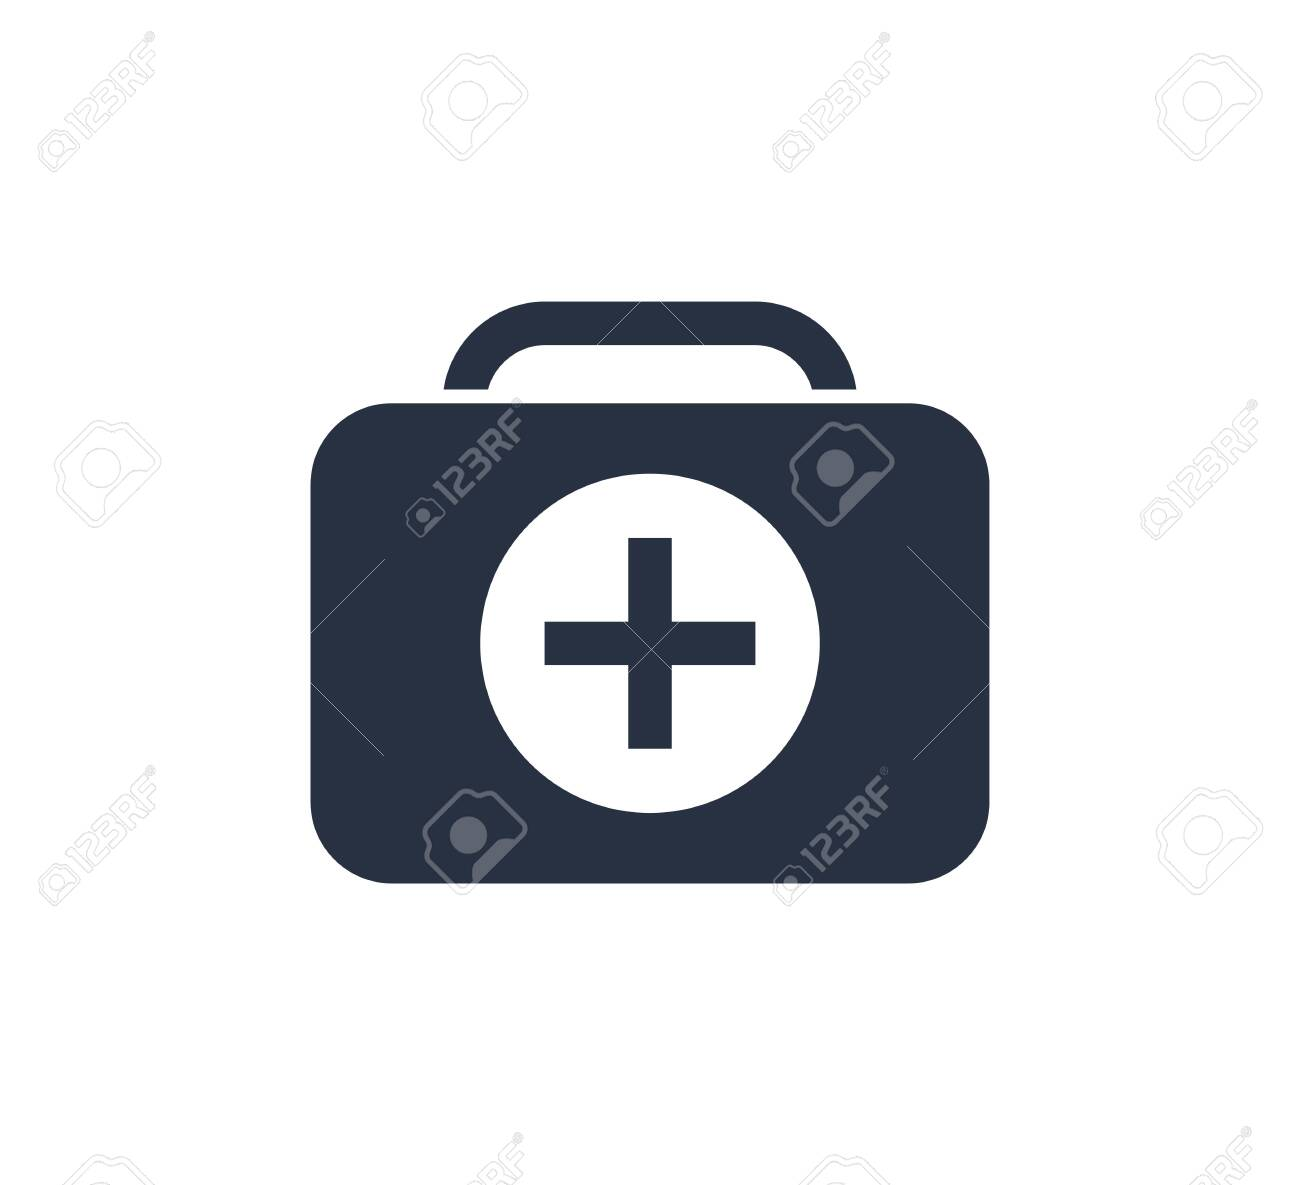 First Aid Kit Icon Vector Illustration. Healthcare icon with emergency briefcase equipment. Life care, medical icon. - 132172857